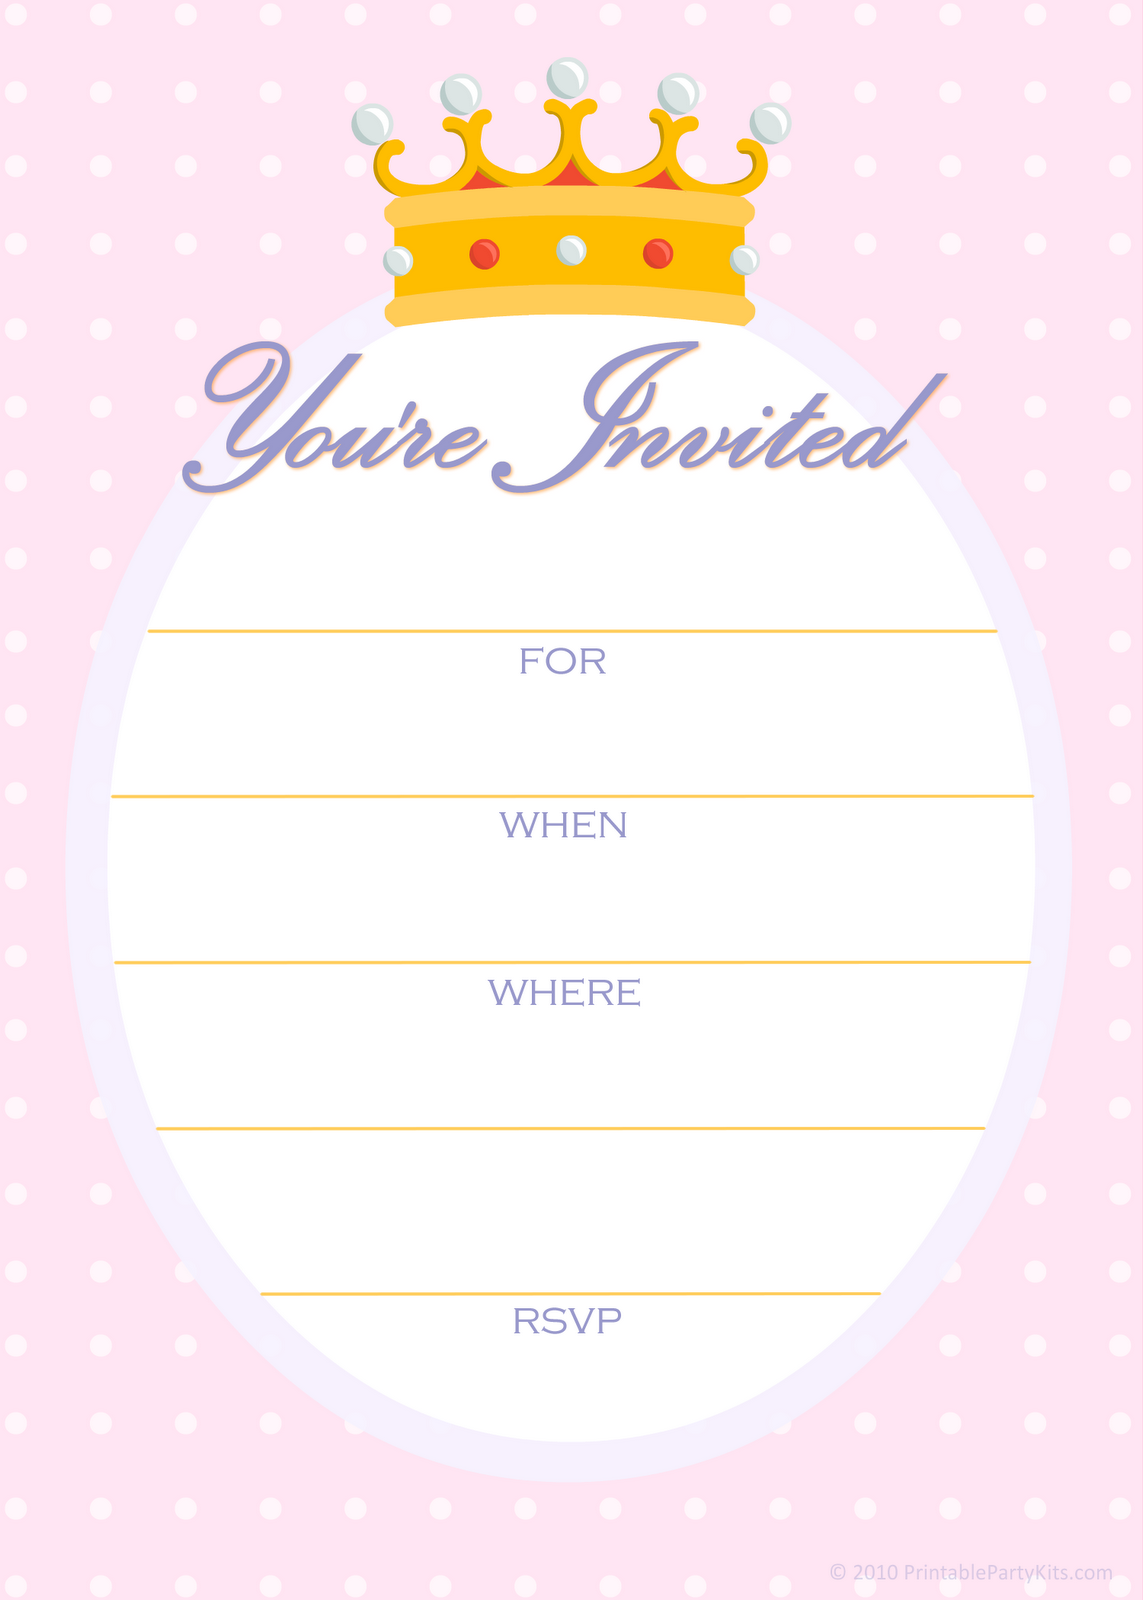 Invitation Card Design And Printing Free Printable Party Invitations: Free Invitations For A